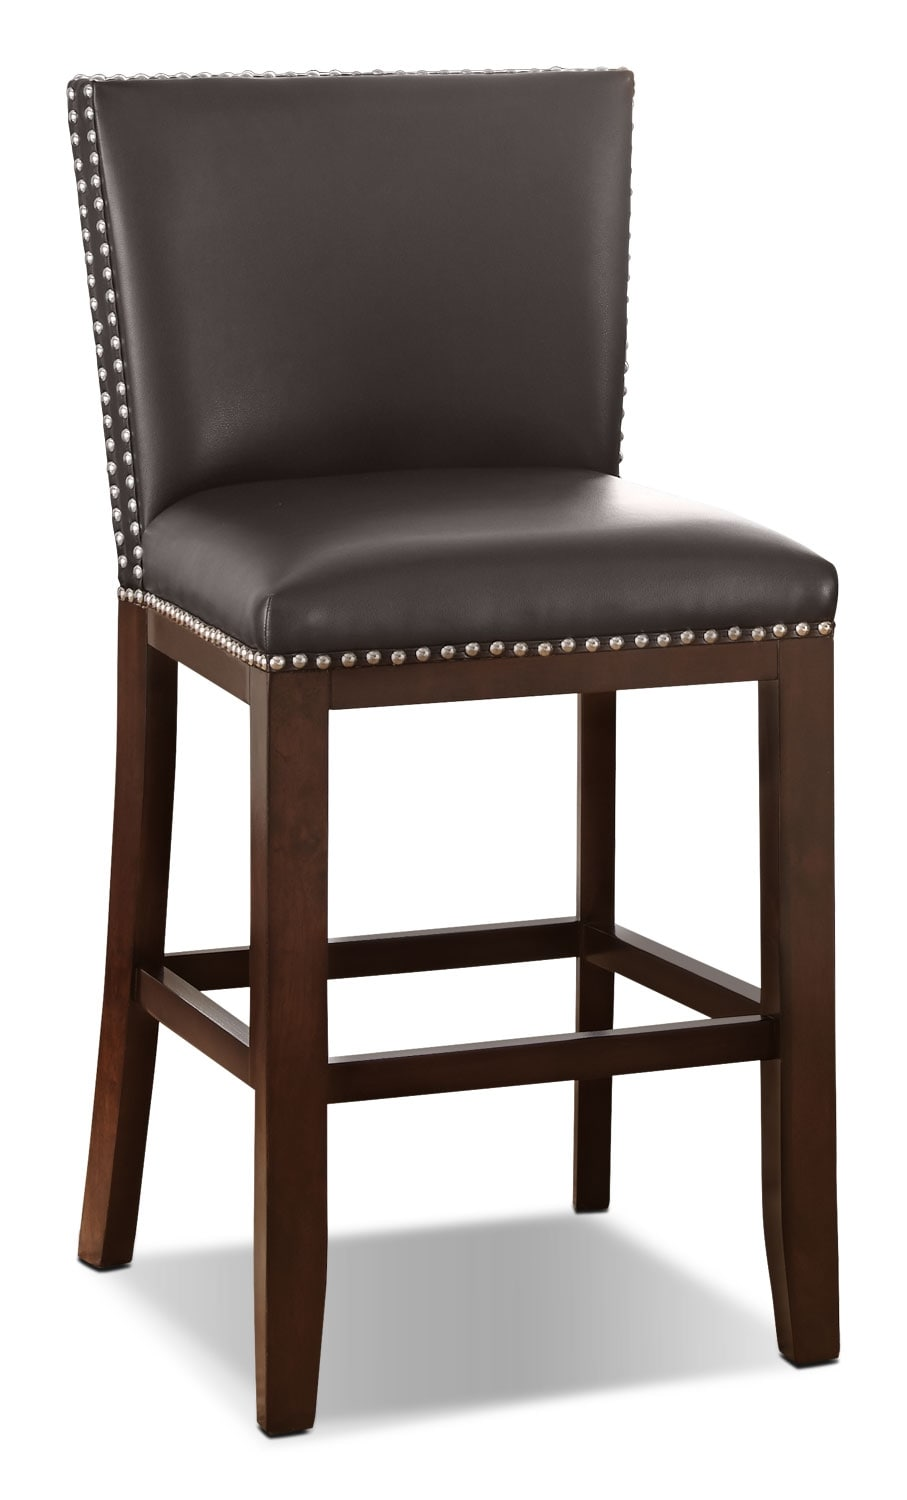 Dining Room Furniture - Tiffany Counter-Height Dining Chair – Brown